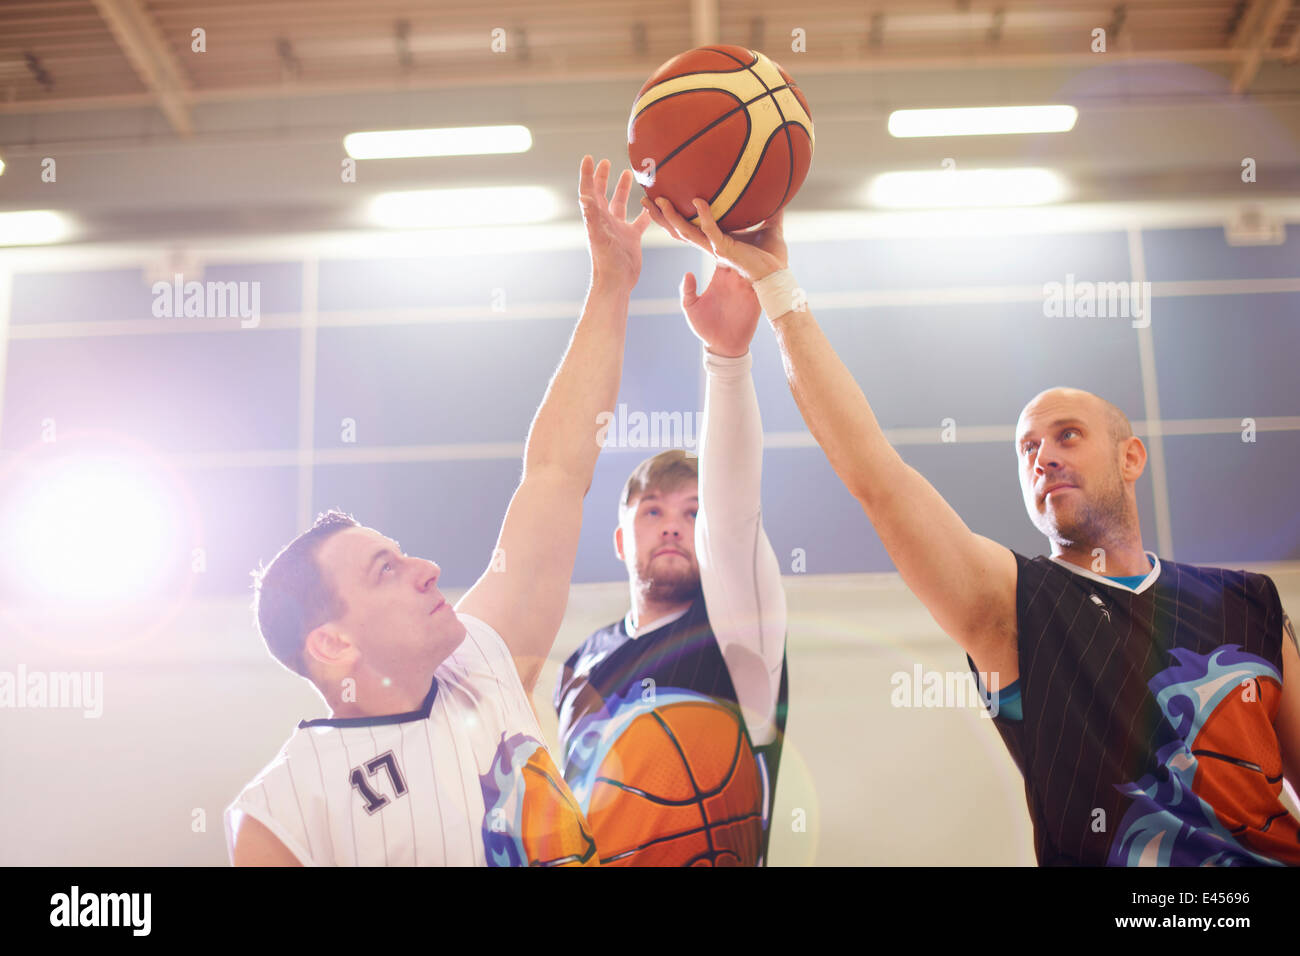 Wheelchair basketball players playing basketball - Stock Image